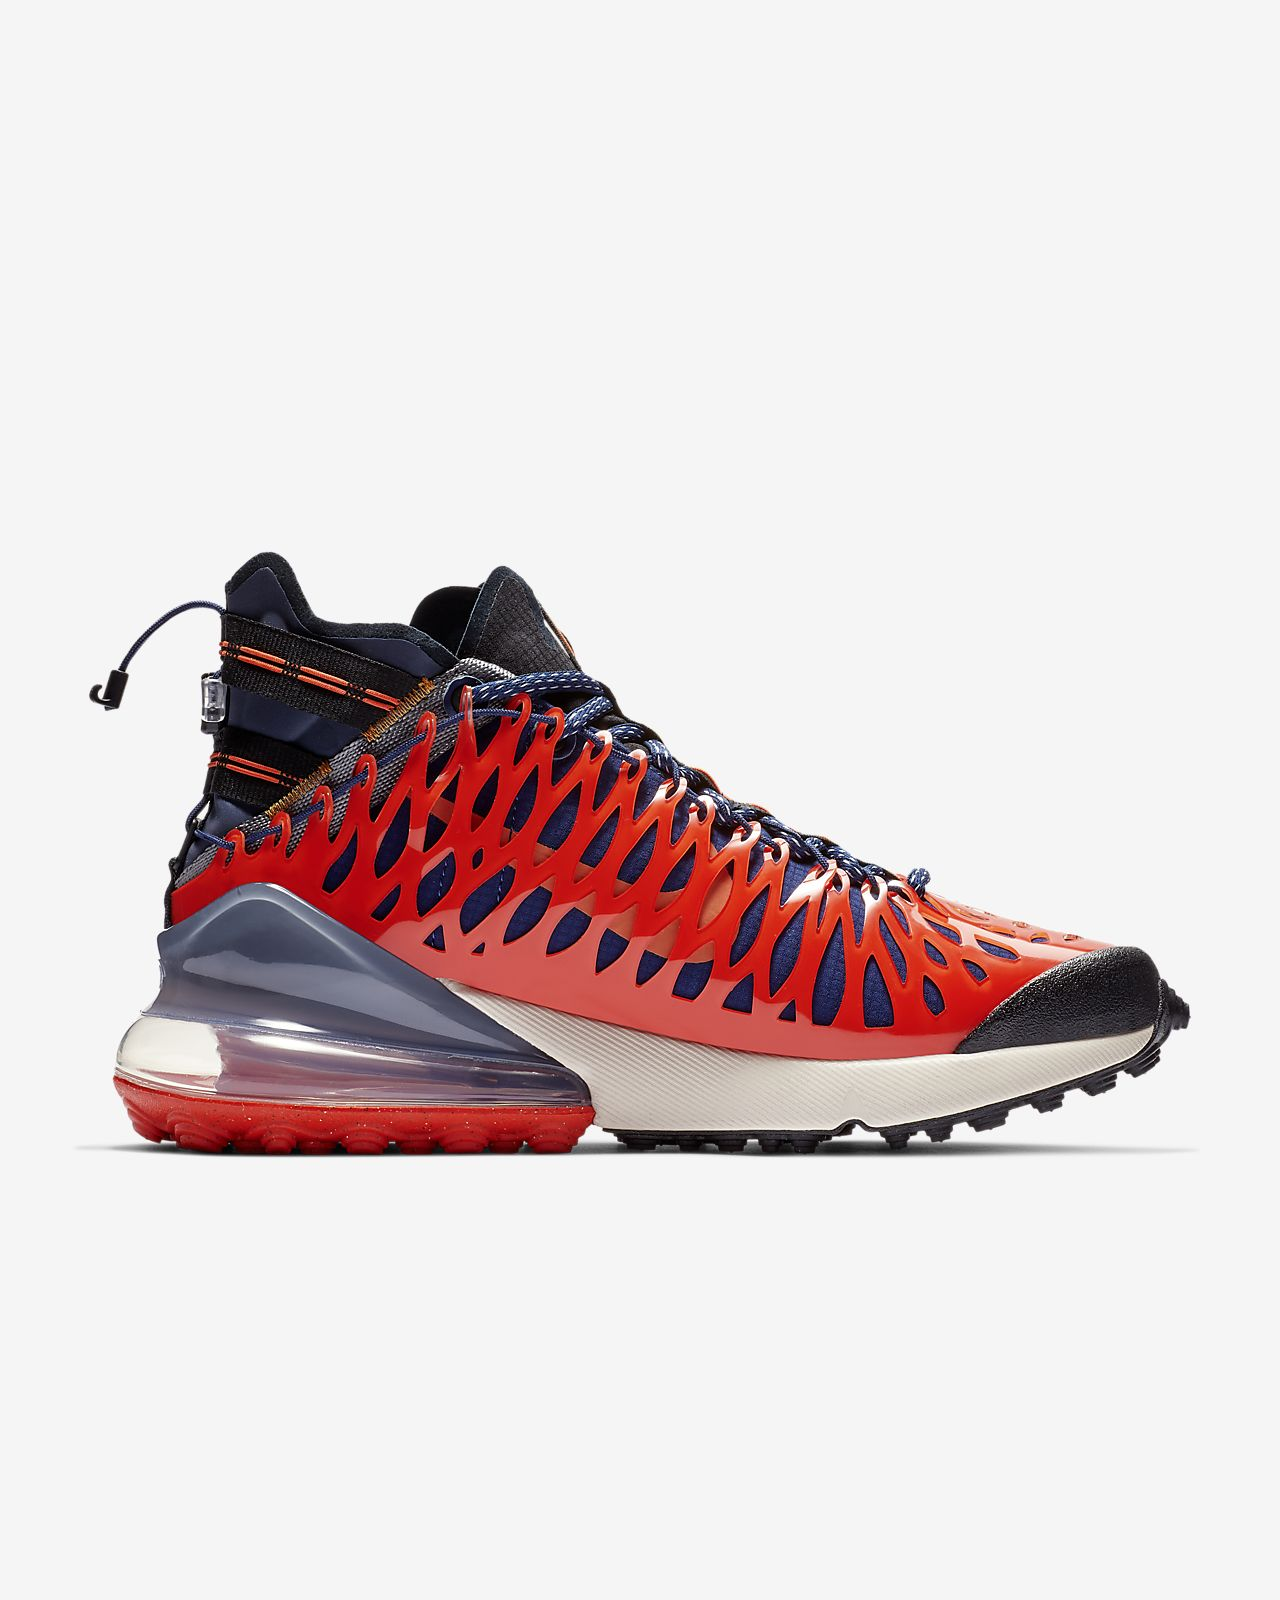 Ispa 270 Pour Homme Nike Chaussure Max Air n0OkwP8